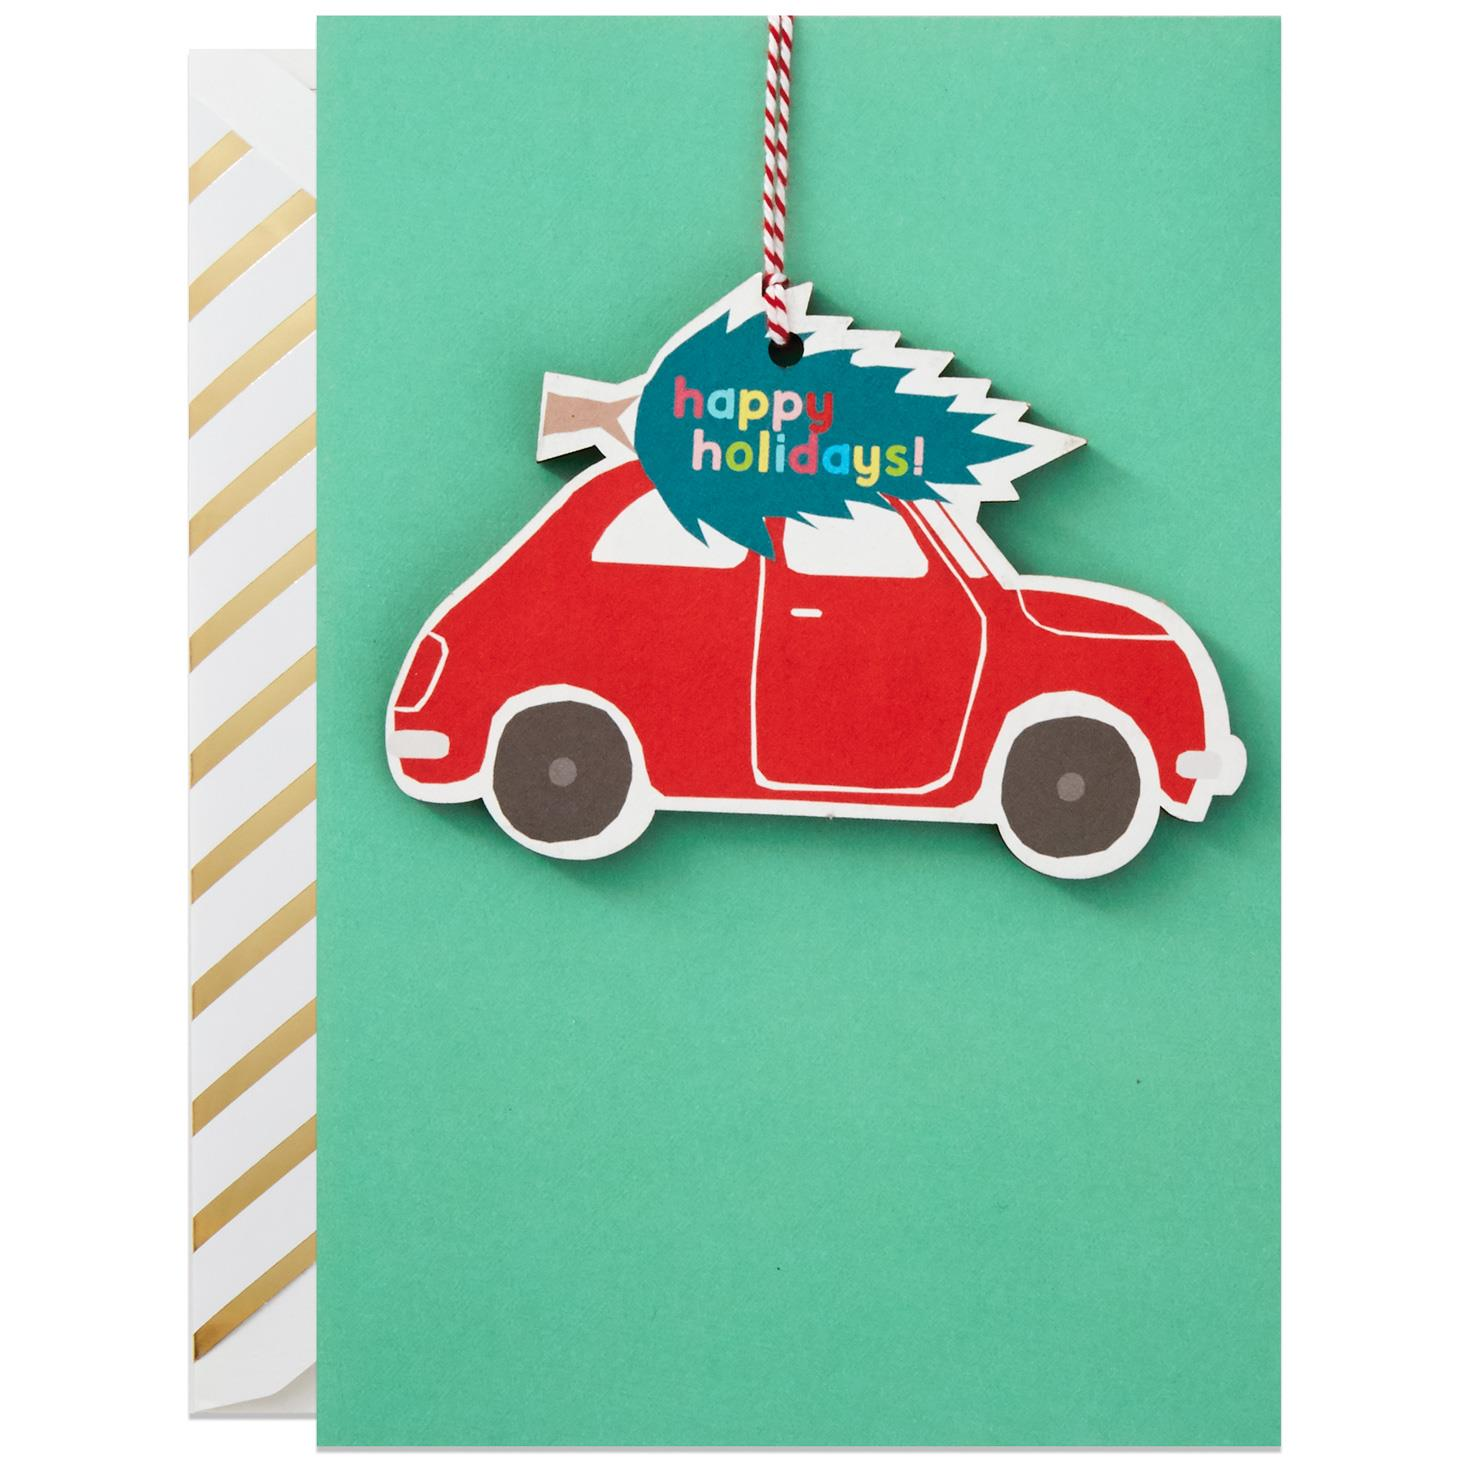 All Kinds Of Happy Christmas Card With Removable Ornament